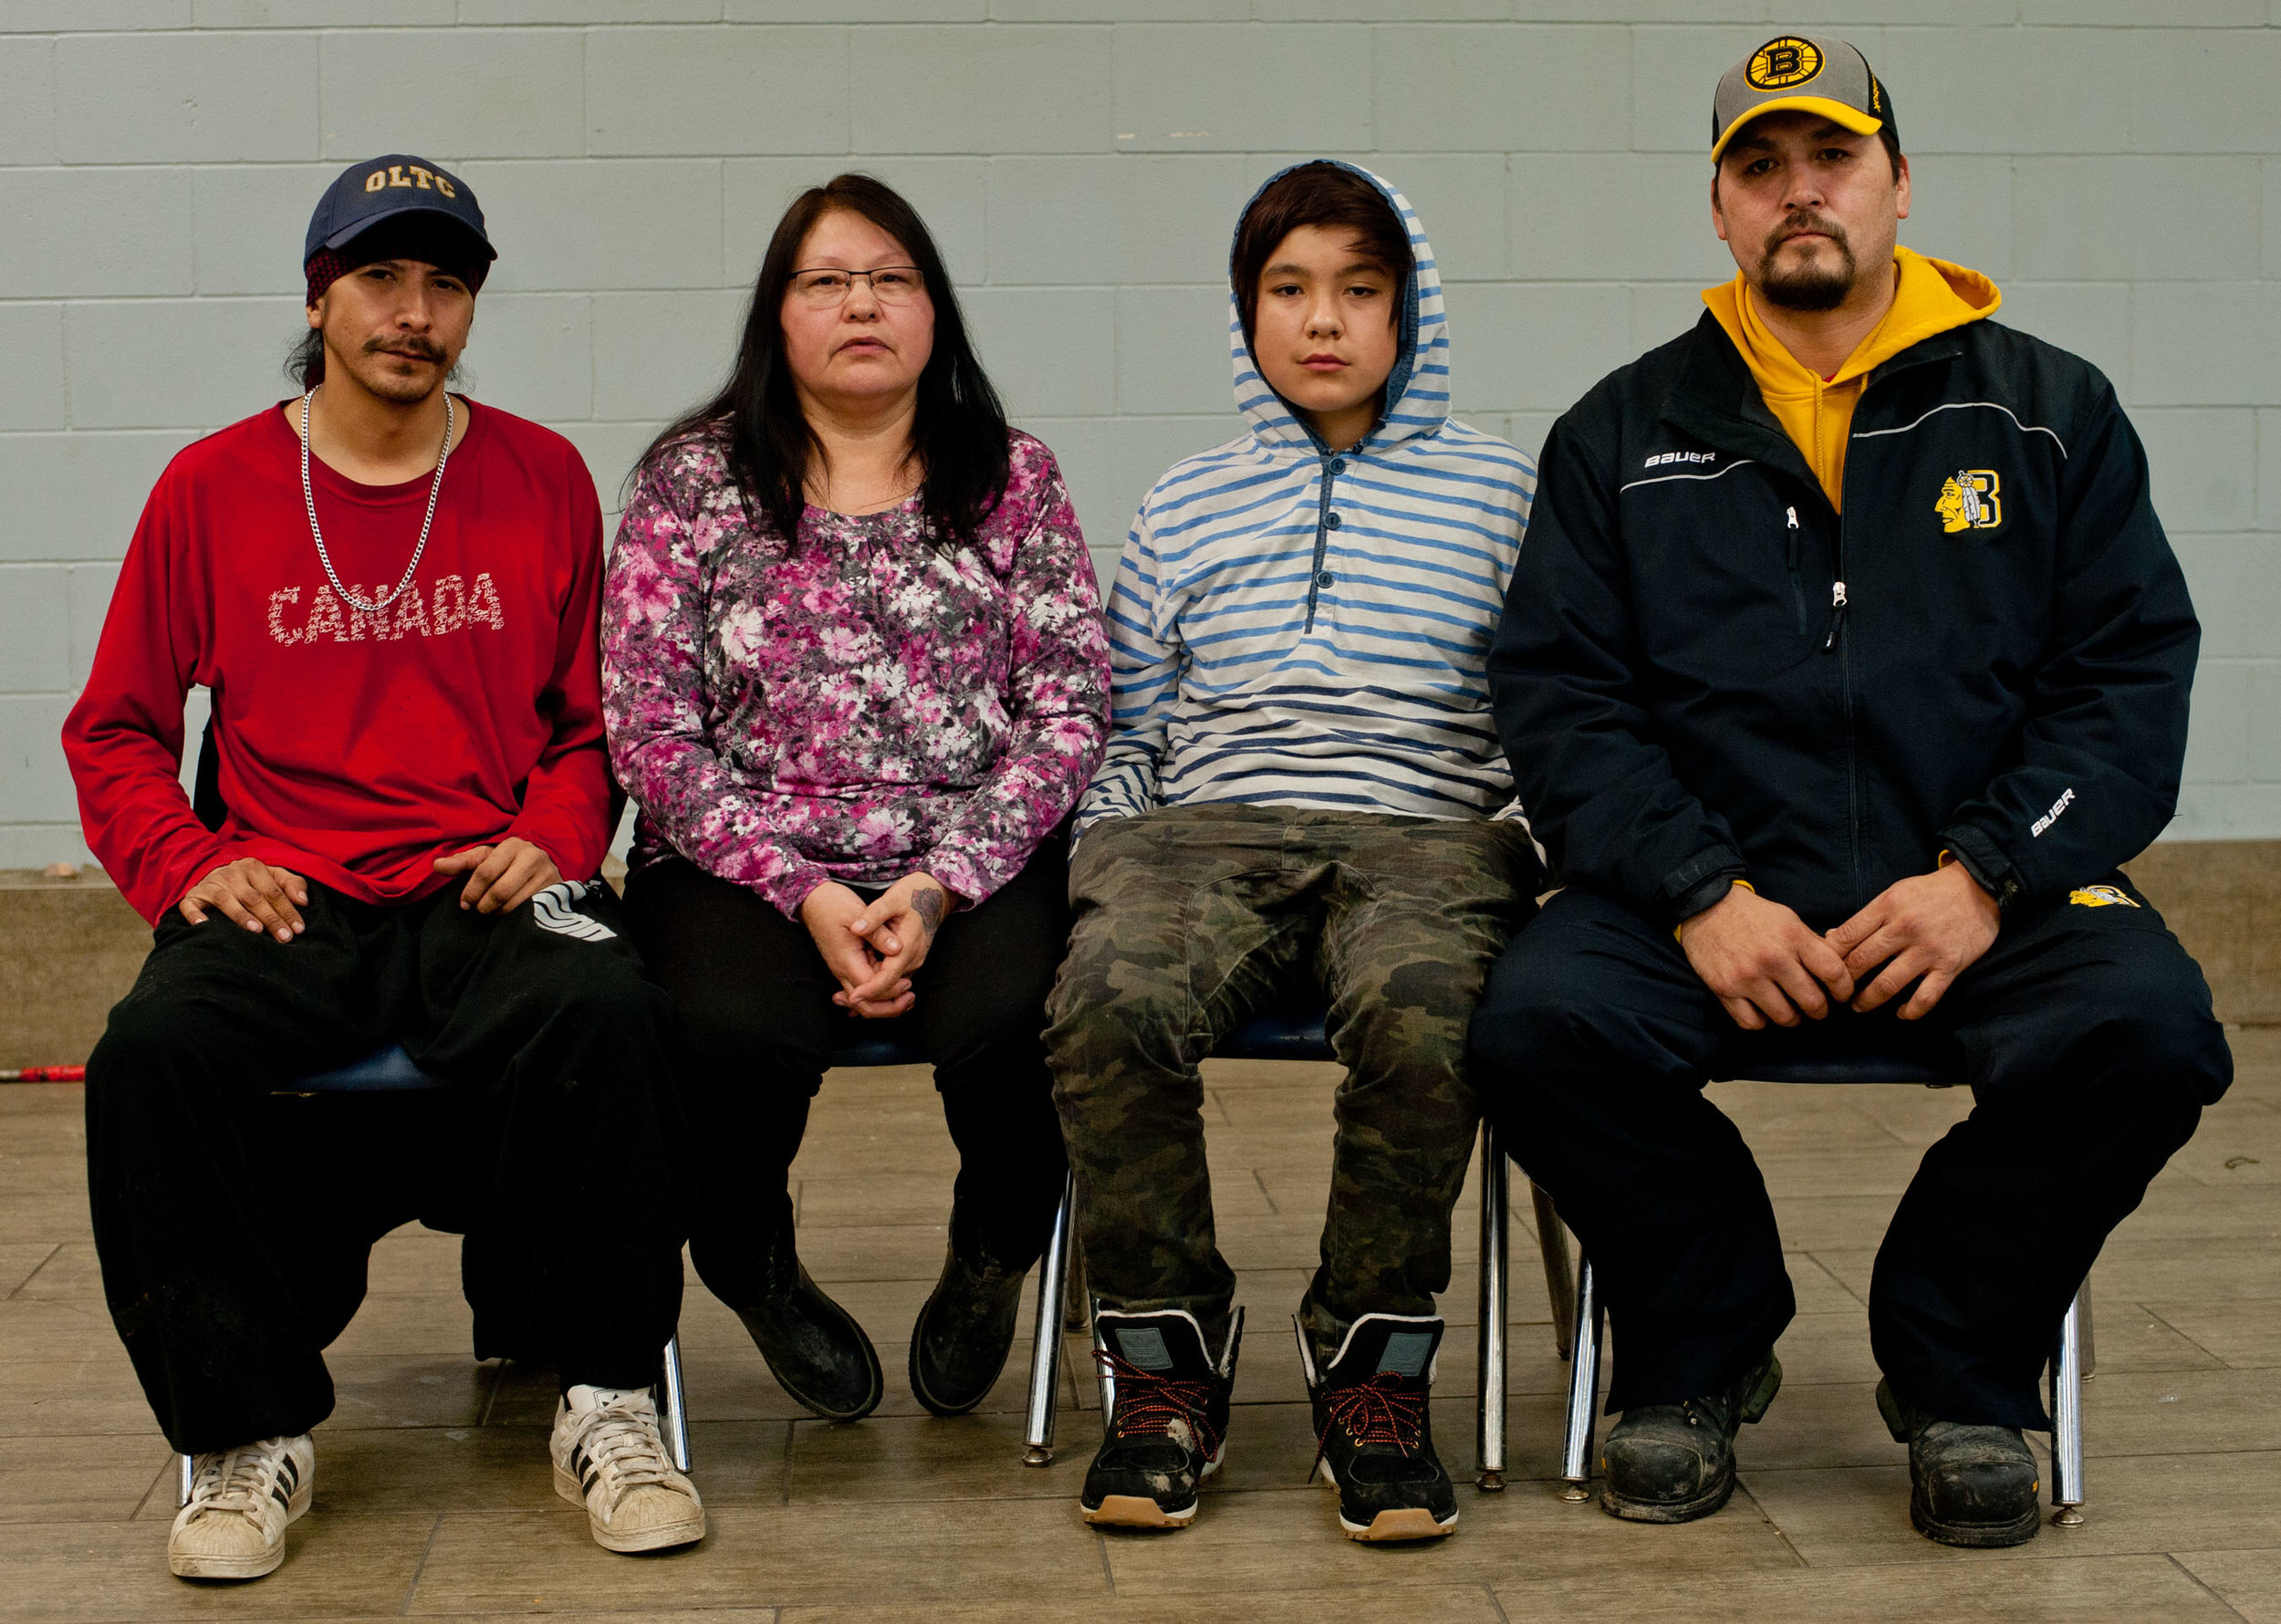 From left to right: Violet's son Darren Heathen, her sister Ruby Whitstone, Violet's youngest son Levi Heathen, and her oldest surviving son, Jeff Heathen. Photo by James Wood/Meridian Booster/Postmedia Network